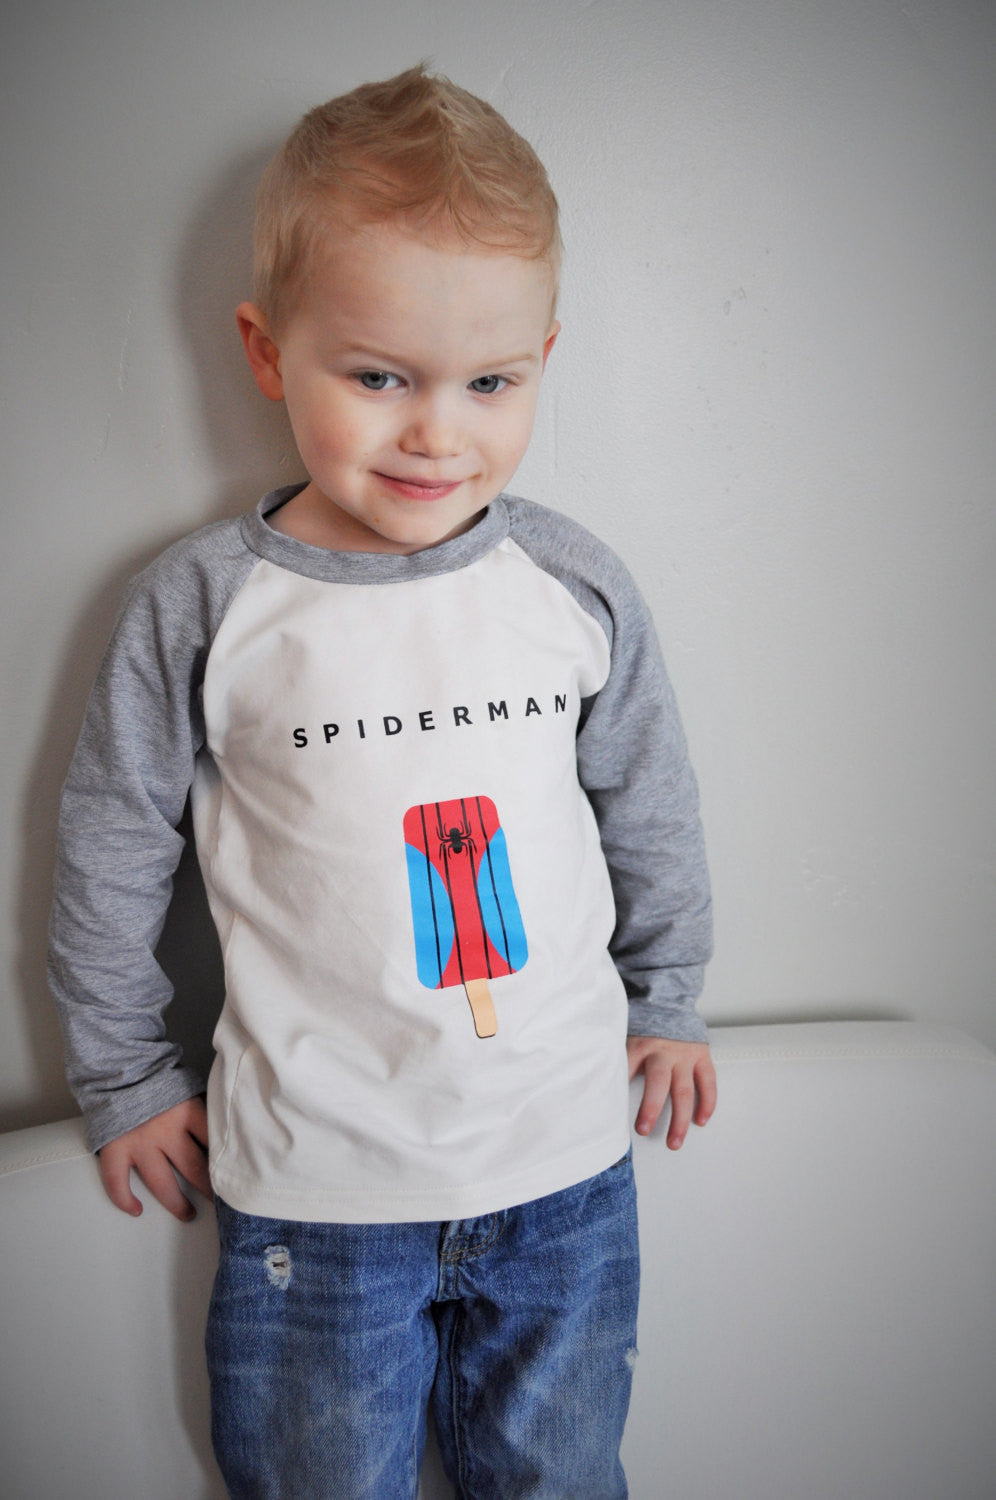 SALE, Super Hero Shirt, SPIDER MAN shirt, boys baseball shirt, Raglan shirt - Our Traditions Boutique - 1